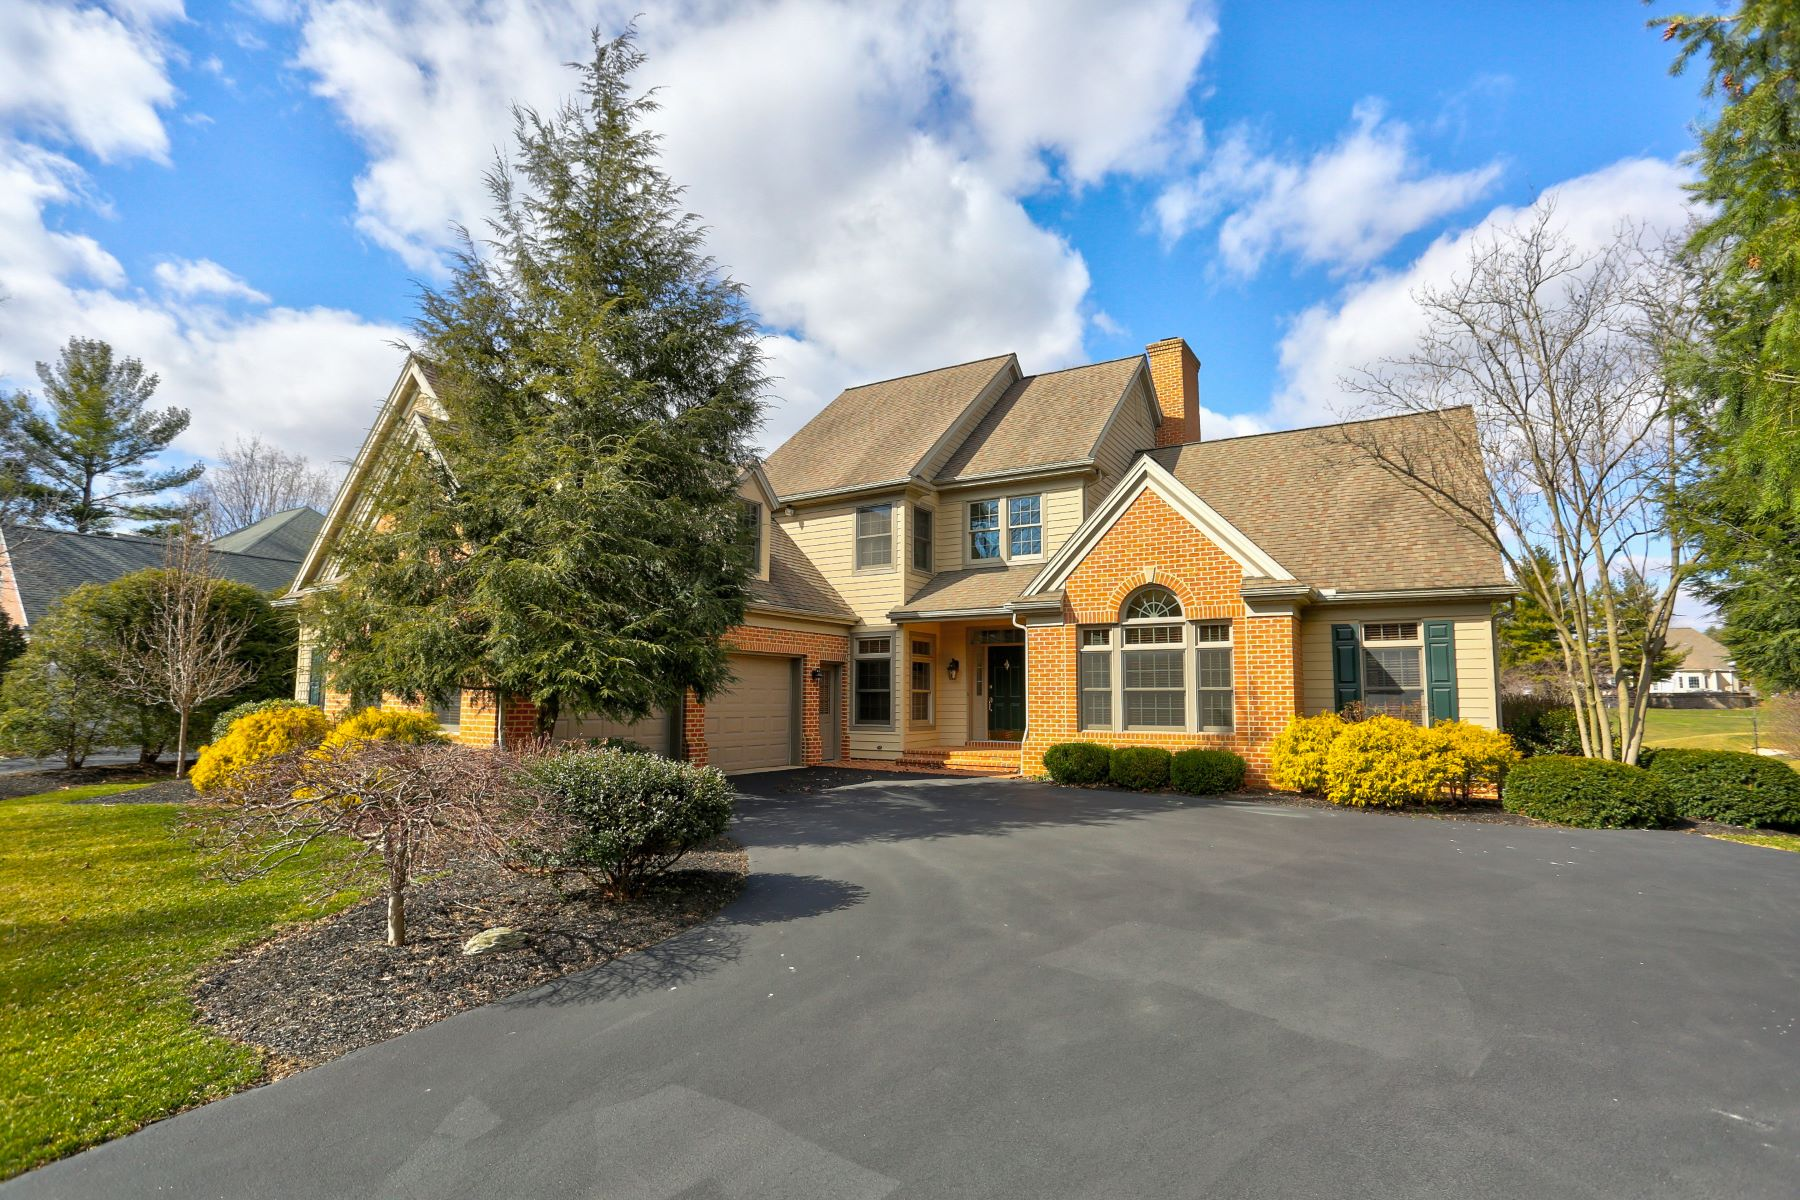 Additional photo for property listing at 74 Oakhill Drive 74 Oakhill Drive Lititz, Pennsylvania 17543 Estados Unidos